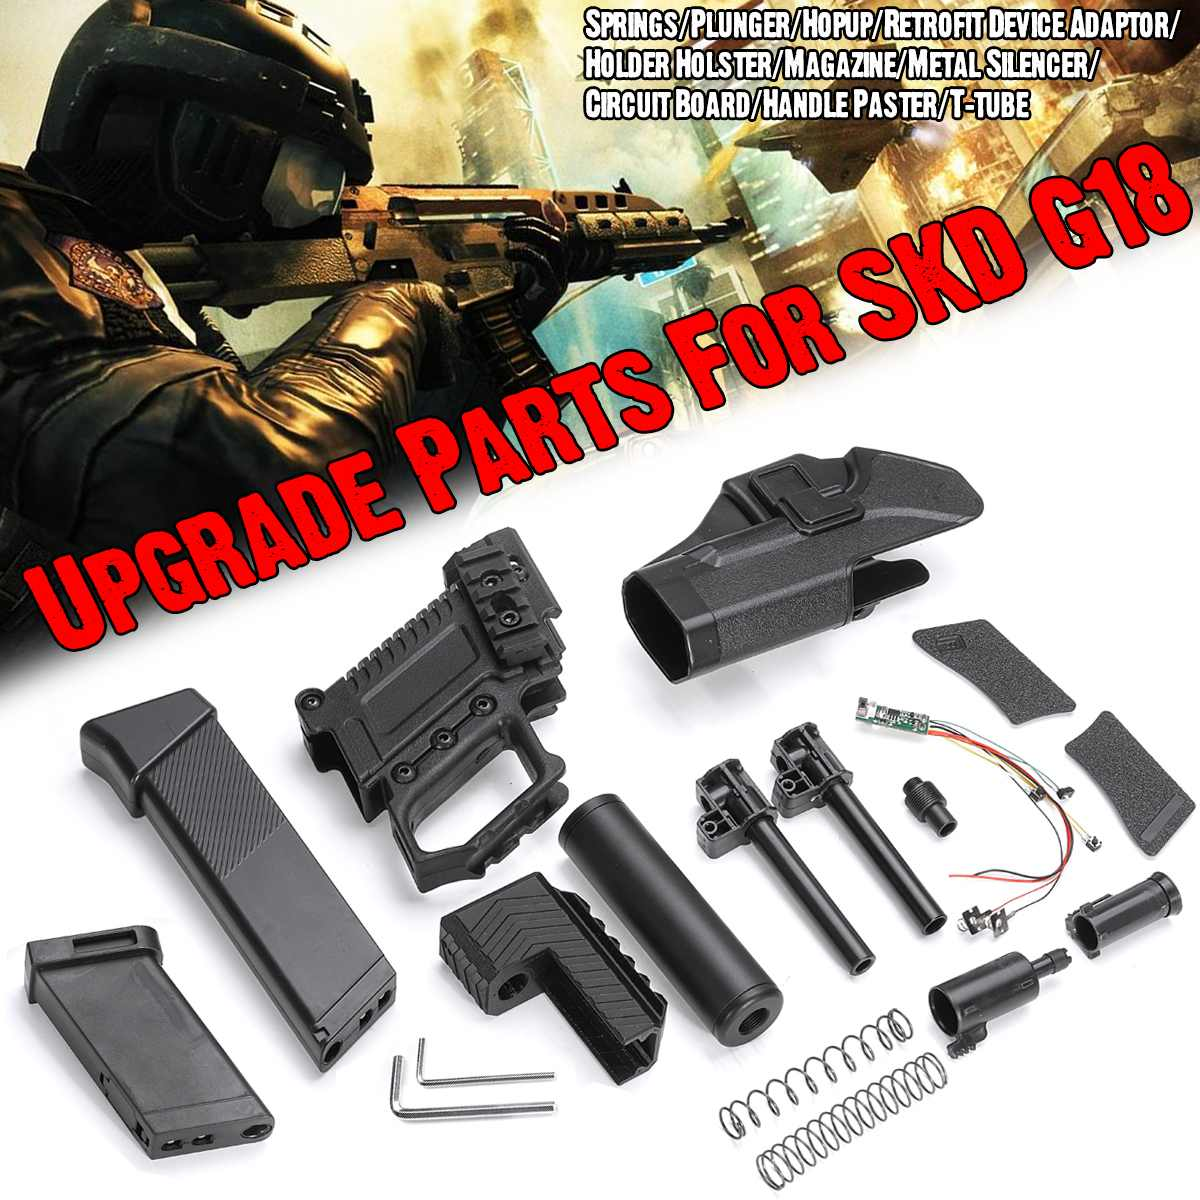 G18 Plunger/Springs/3D Printed HGopup/Black T-tube/Plastic Handle /Short Magazine/Long Magazine Paster Upgrade Parts For SKD G18